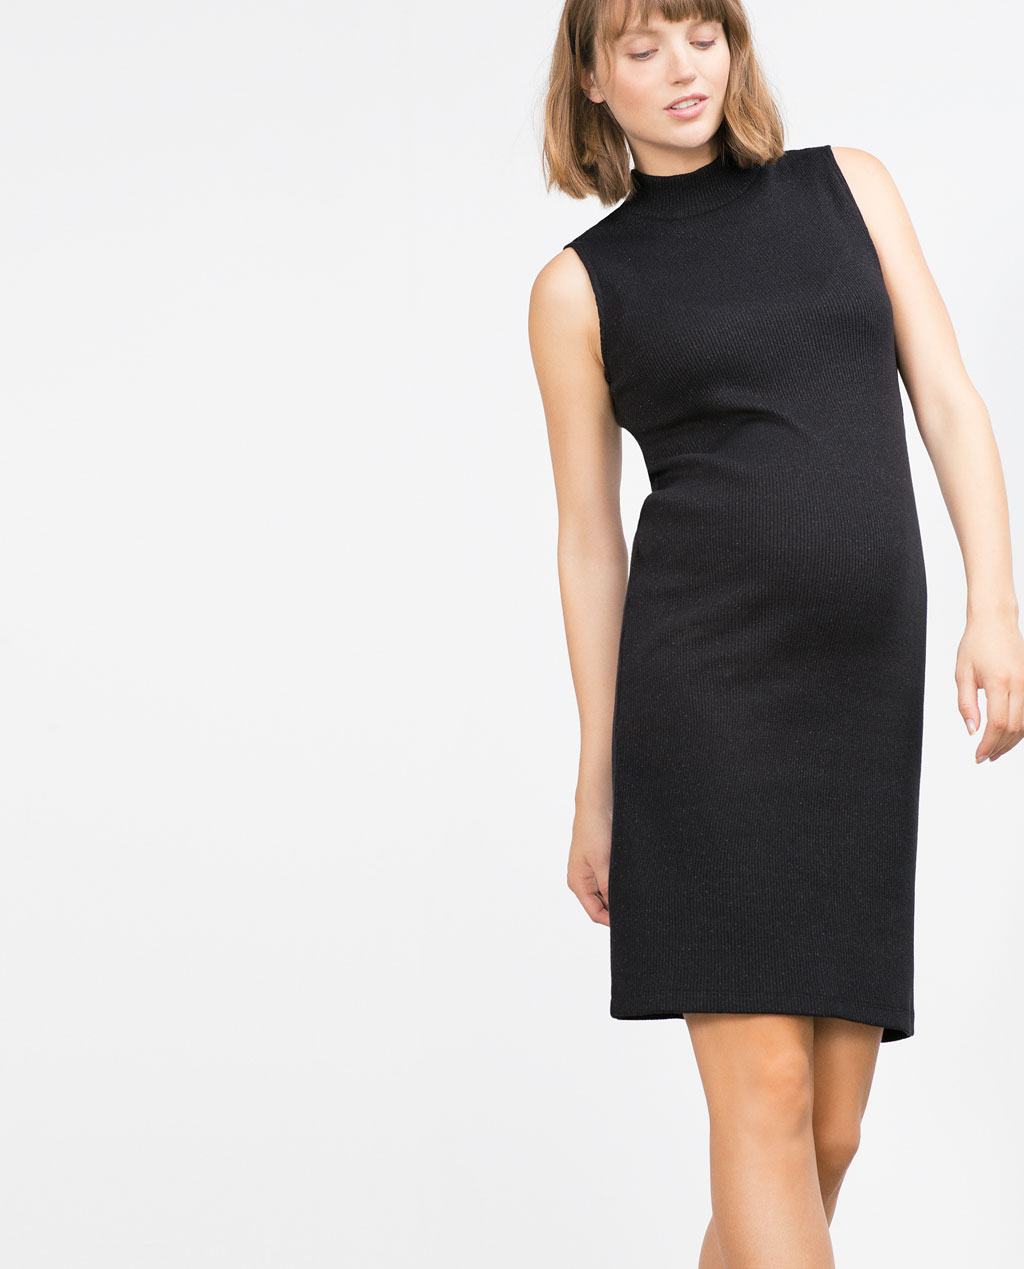 Maternity clothes needn't be a struggle, so that's why news of Zara's maternity line is so welcome. That's right, friends: in addition to their women's, men's, and children's clothing, Zara offers